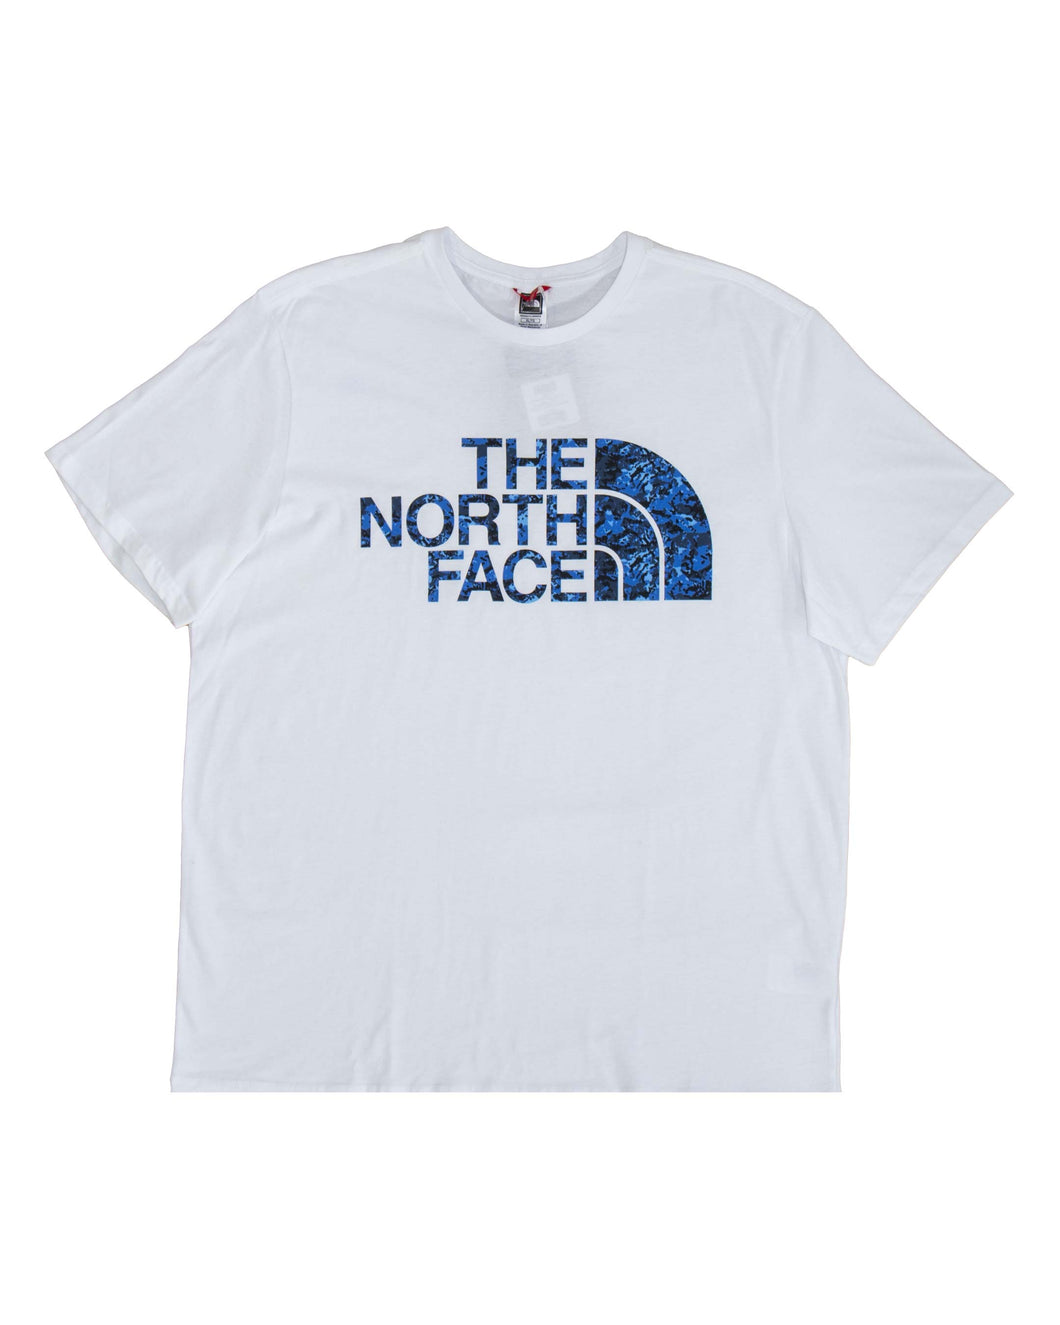 The North Face T Shirt Standard Ss Tee White Clear Blue